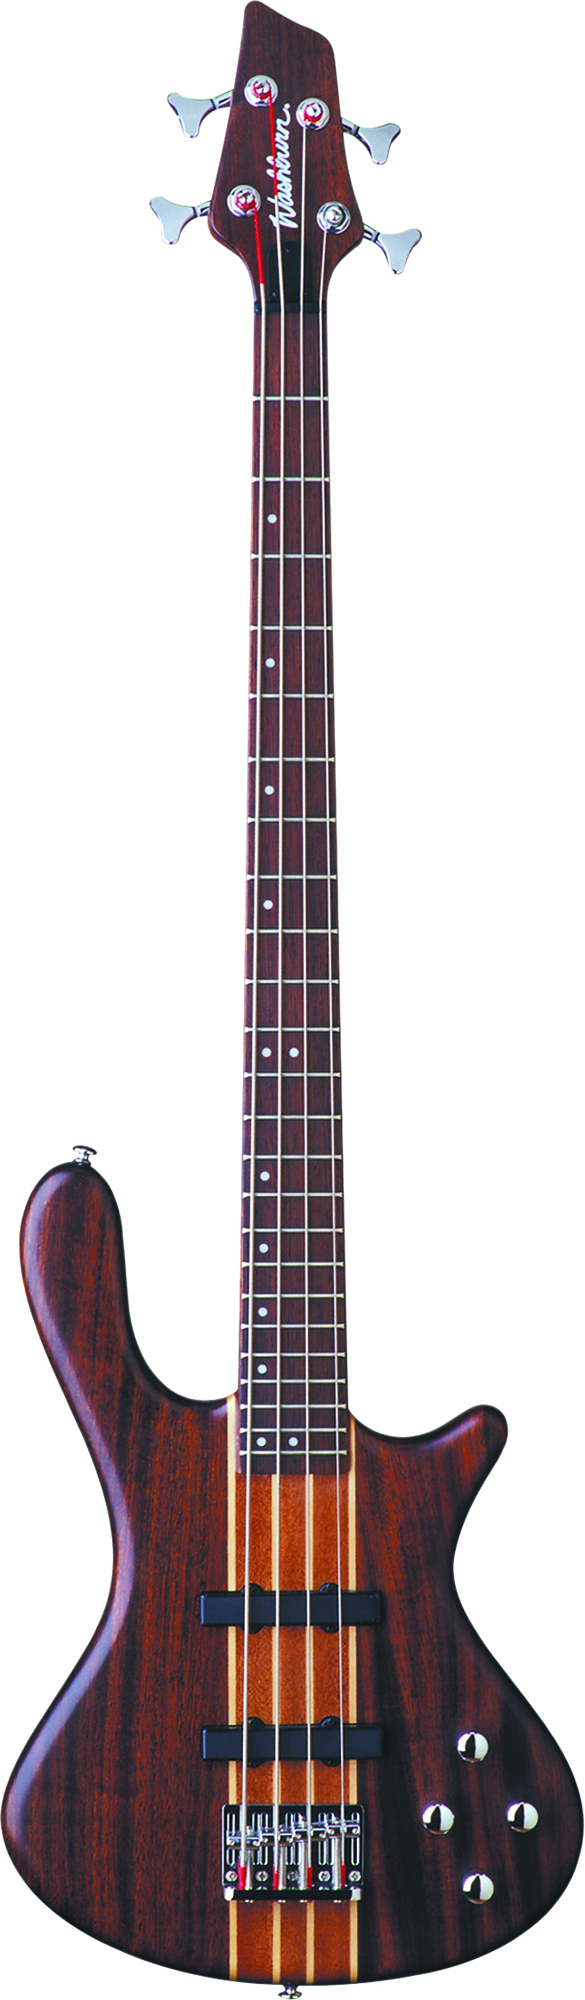 washburn t24nmk taurus series electric bass guitar with natural matte finish was12 t24nmk. Black Bedroom Furniture Sets. Home Design Ideas